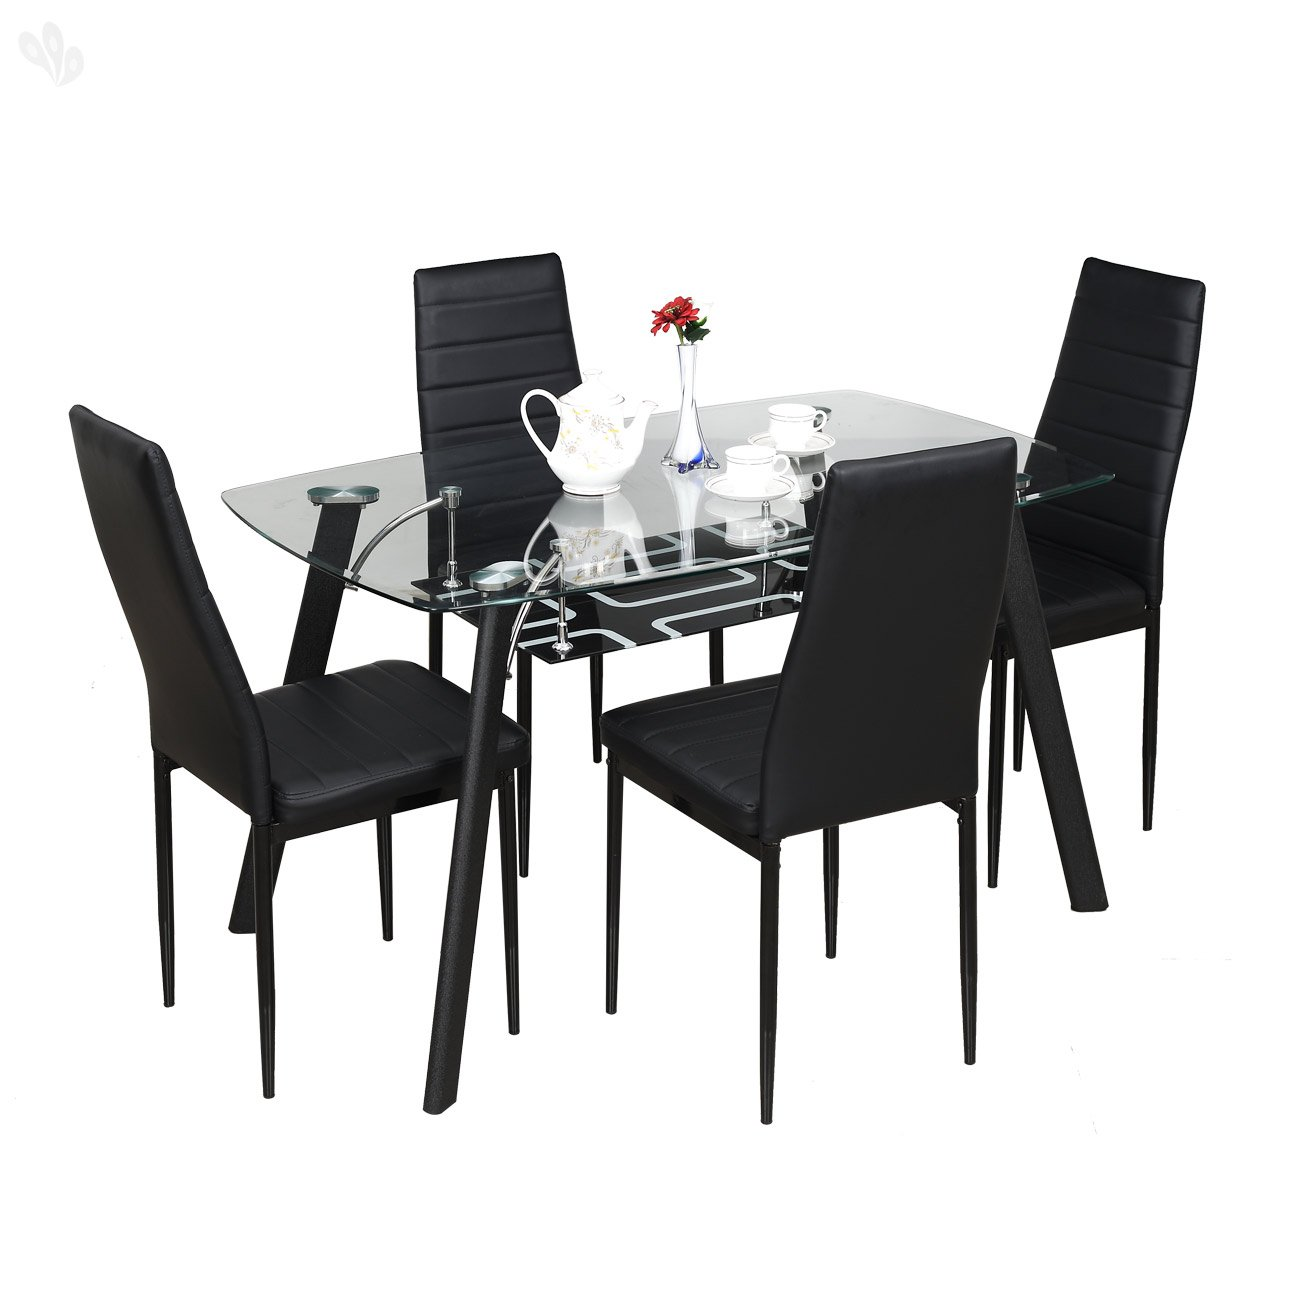 Royal oak milan four seater dining table set black for Four chair dining table